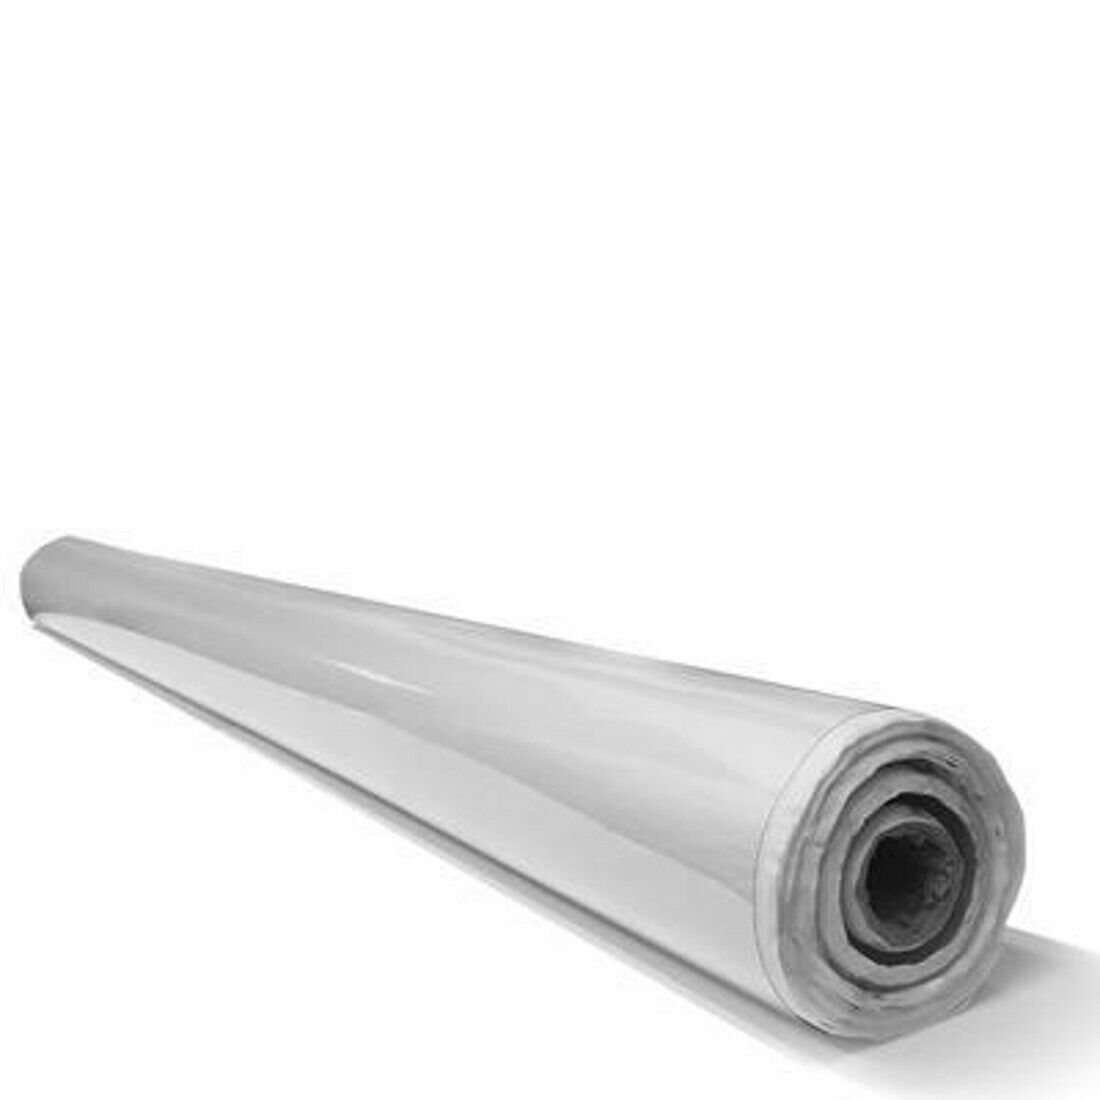 "16 Gauge Clear Vinyl 54"" Wide - 25 Yard Roll"